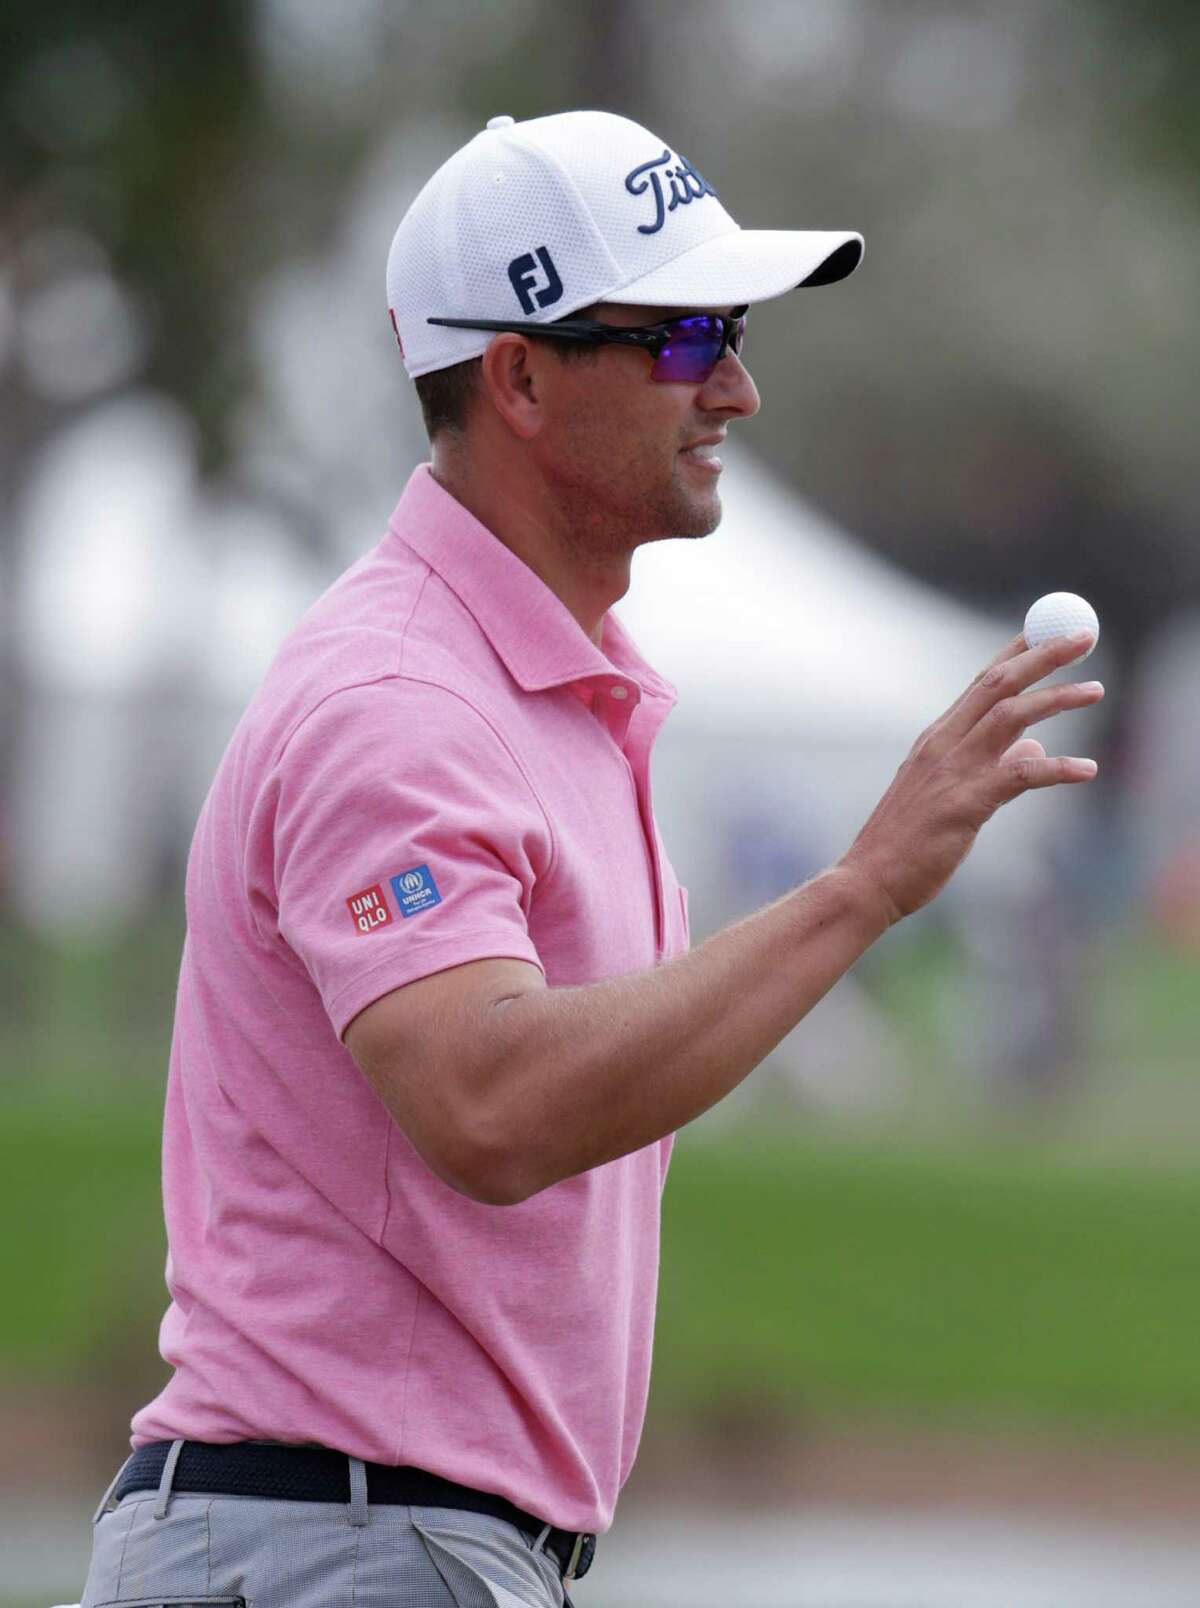 Adam Scott, of Australia, holds up the ball after a birdie putt on the first hole during the fourth round of the Honda Classic golf tournament, Sunday, Feb. 28, 2016, in Palm Beach Gardens, Fla. (AP Photo/Lynne Sladky) ORG XMIT: FLLS107